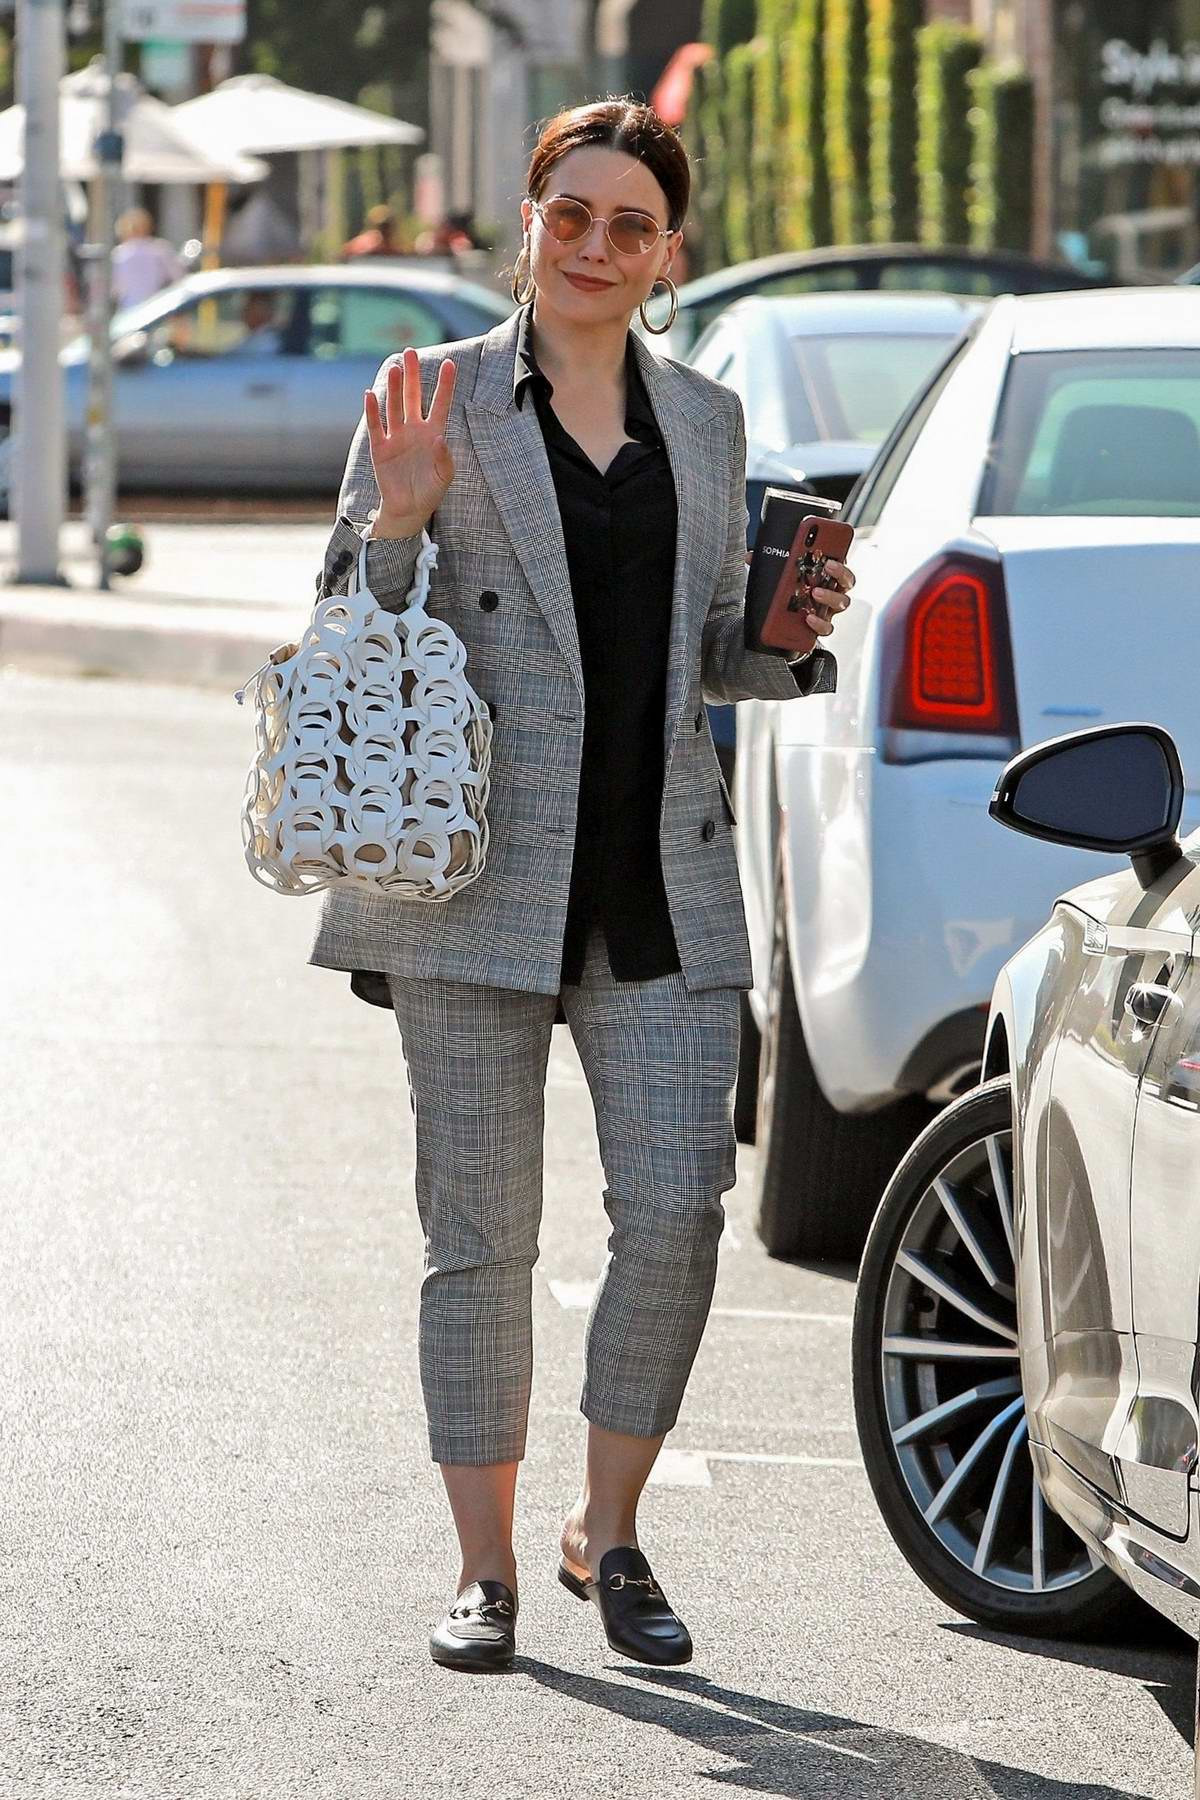 Sophia Bush wears a grey checkered suit during a shopping trip on Melrose Place in West Hollywood, Los Angeles